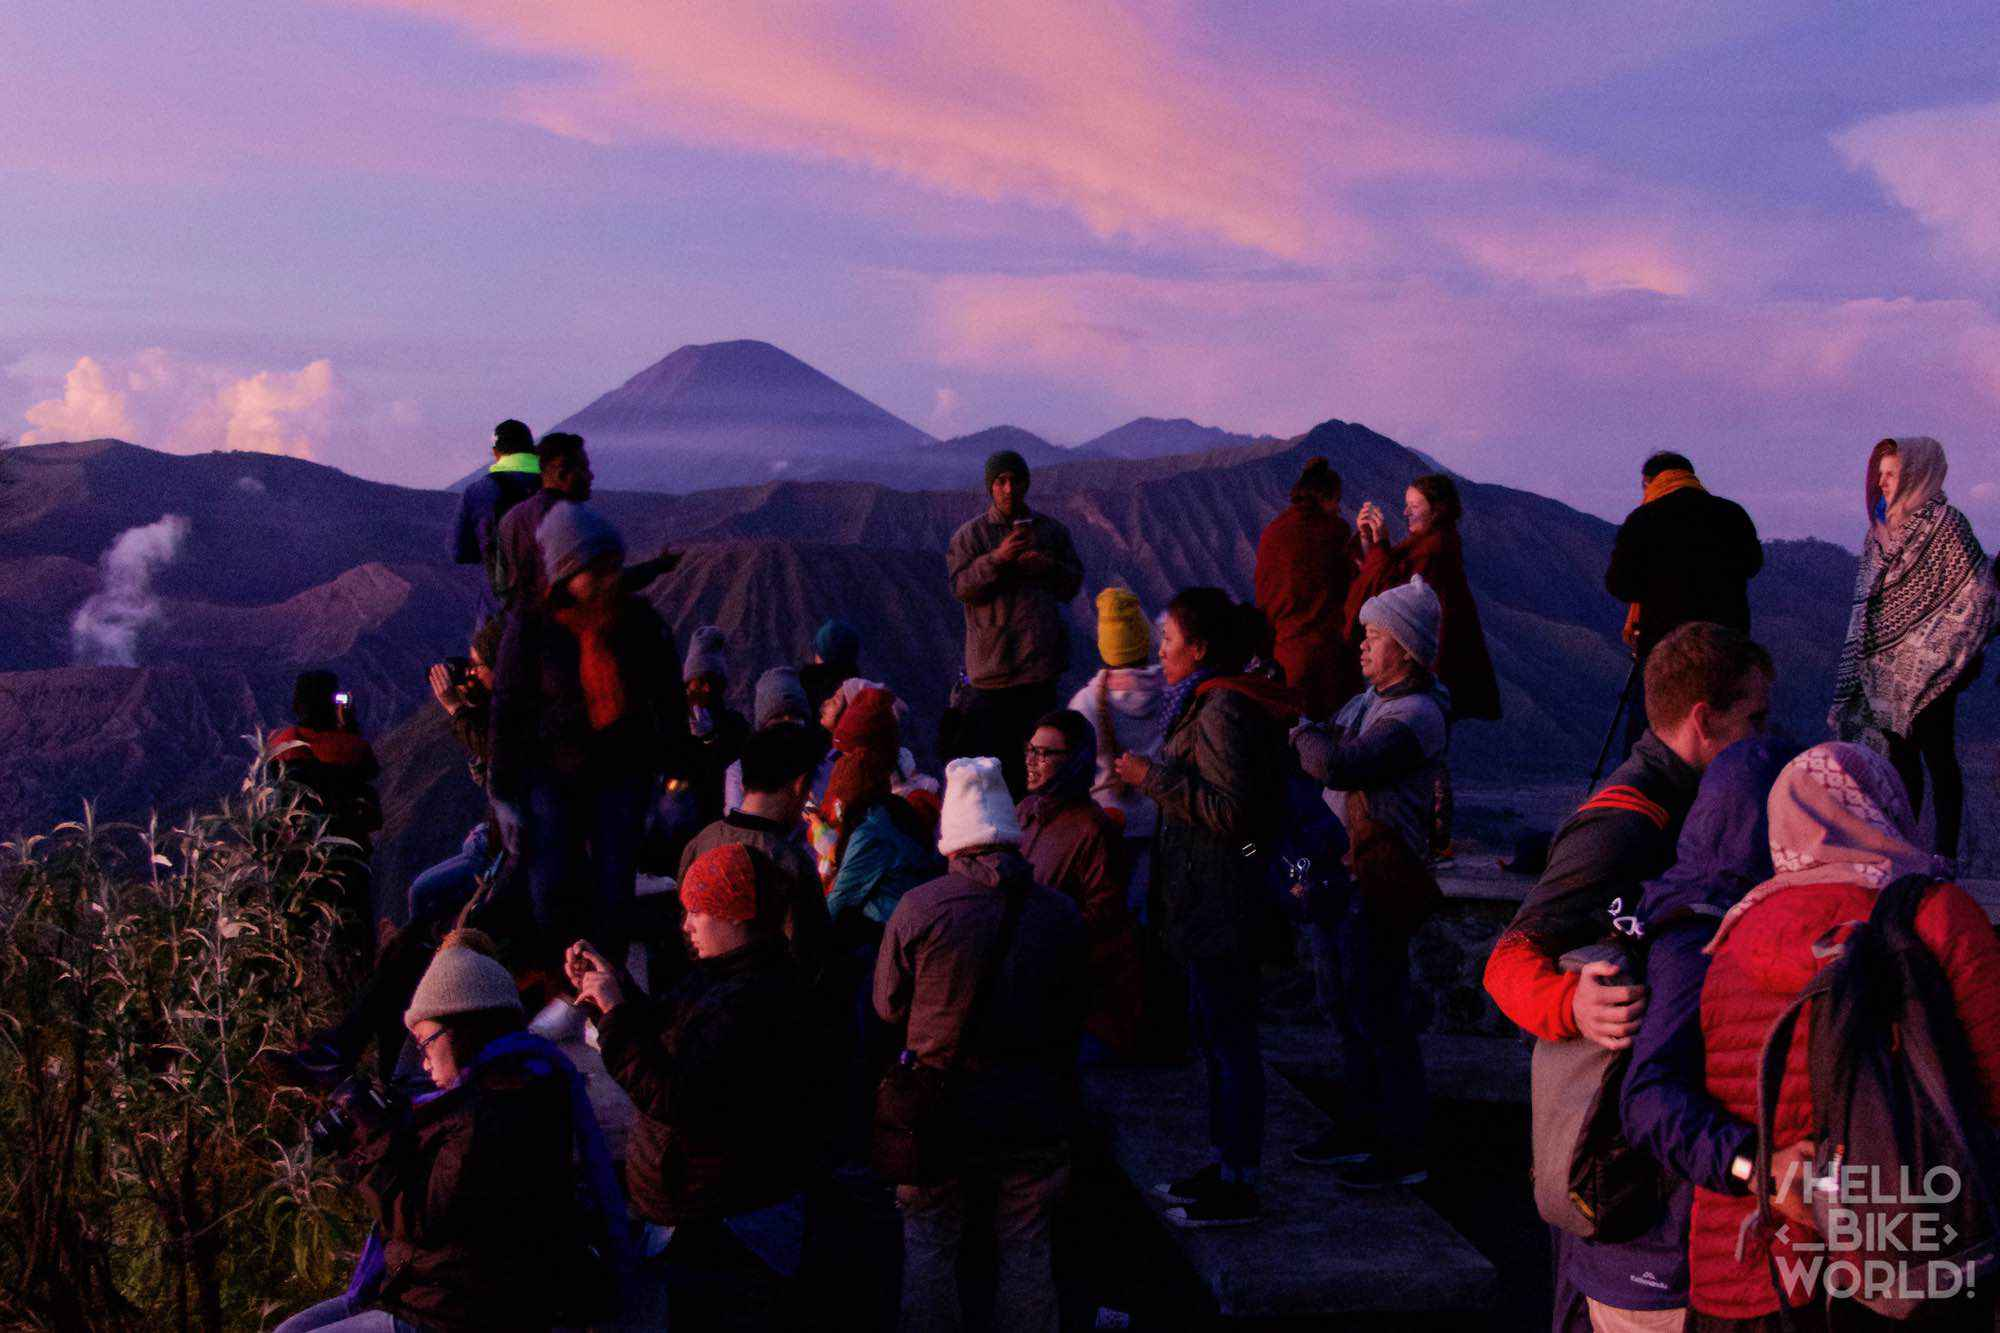 Valiant tourists facing the cold and fatigue for the sunrise over Bromo